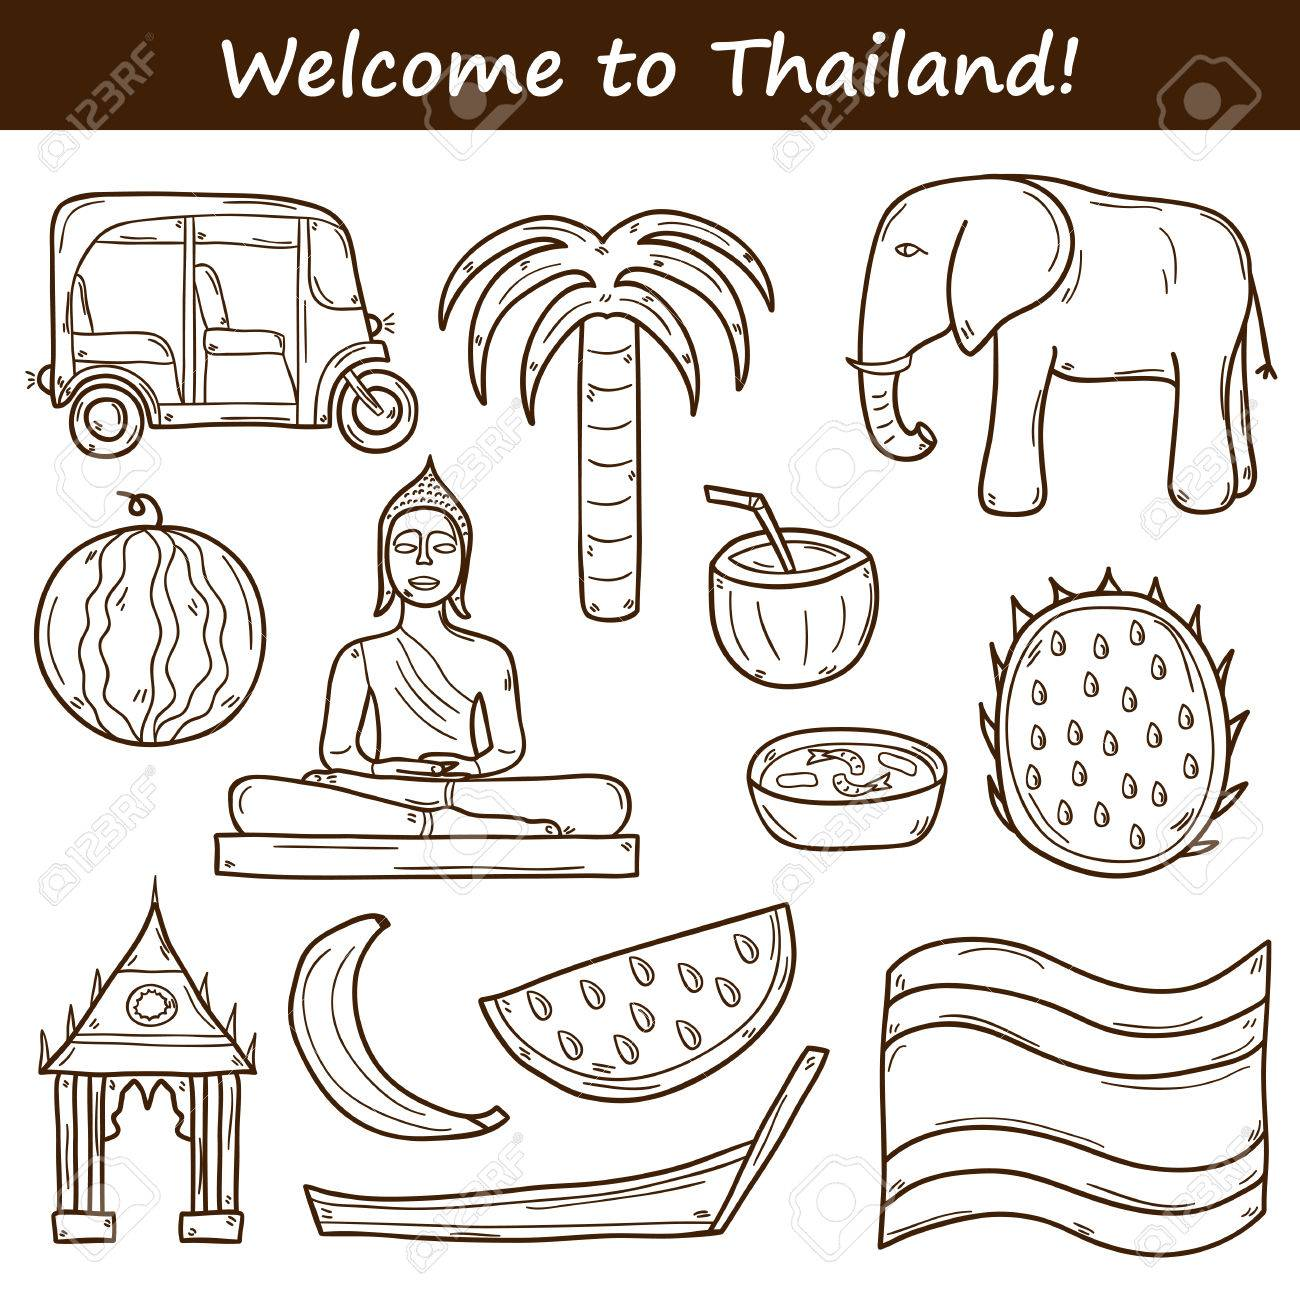 Set Of Cartoon Outline Objects On Thailand Theme Taxi Buddha Flag Fruits